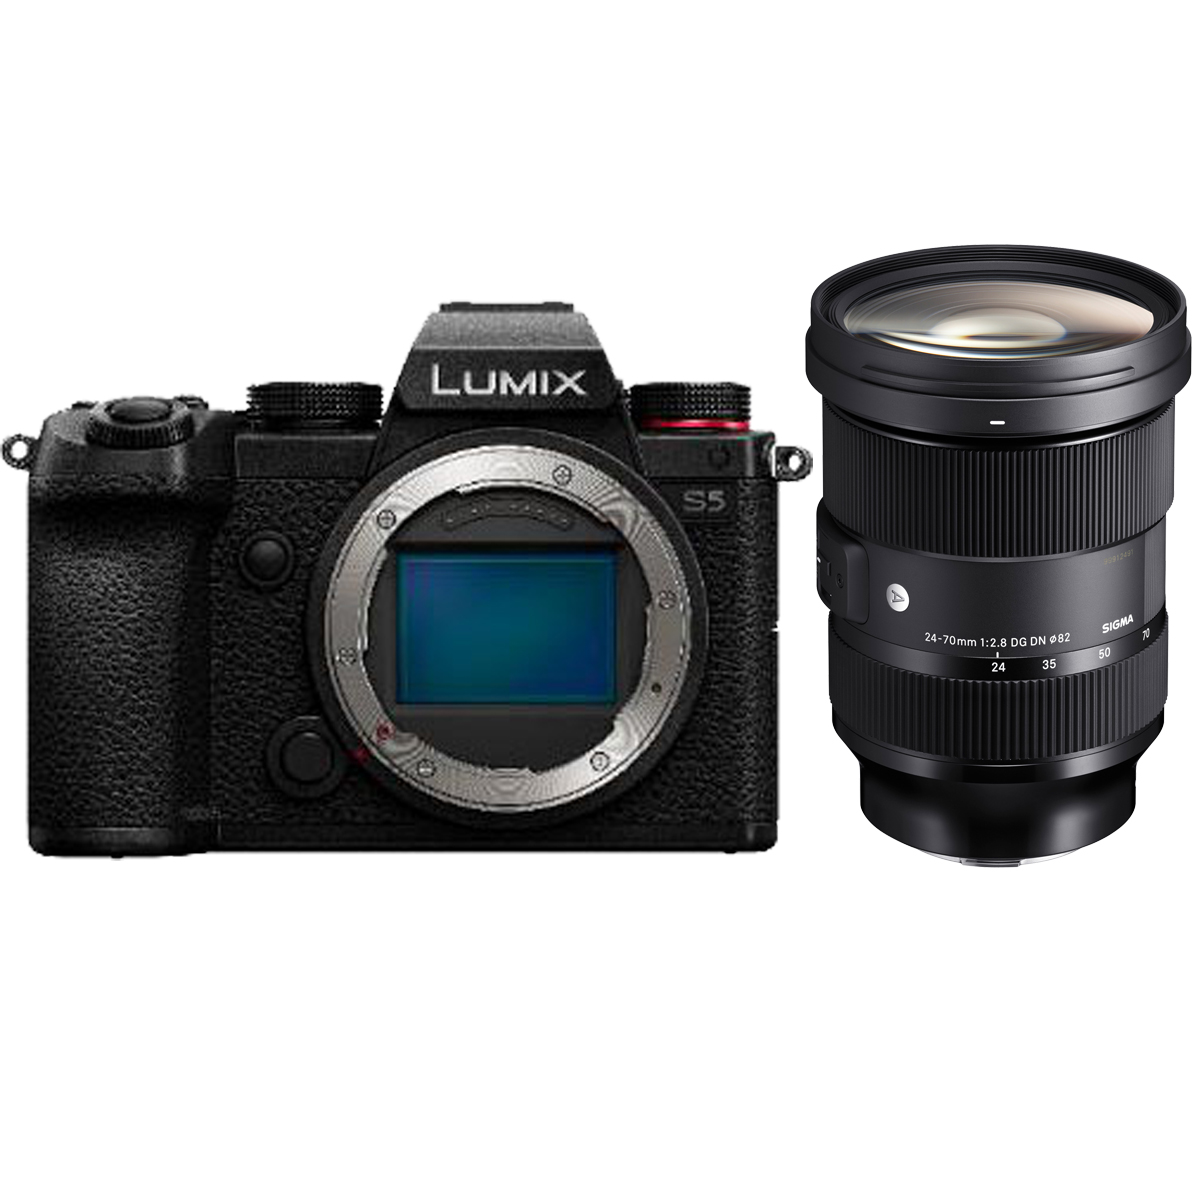 Panasonic S5 Kit mit Sigma 24-70 mm 1:2,8